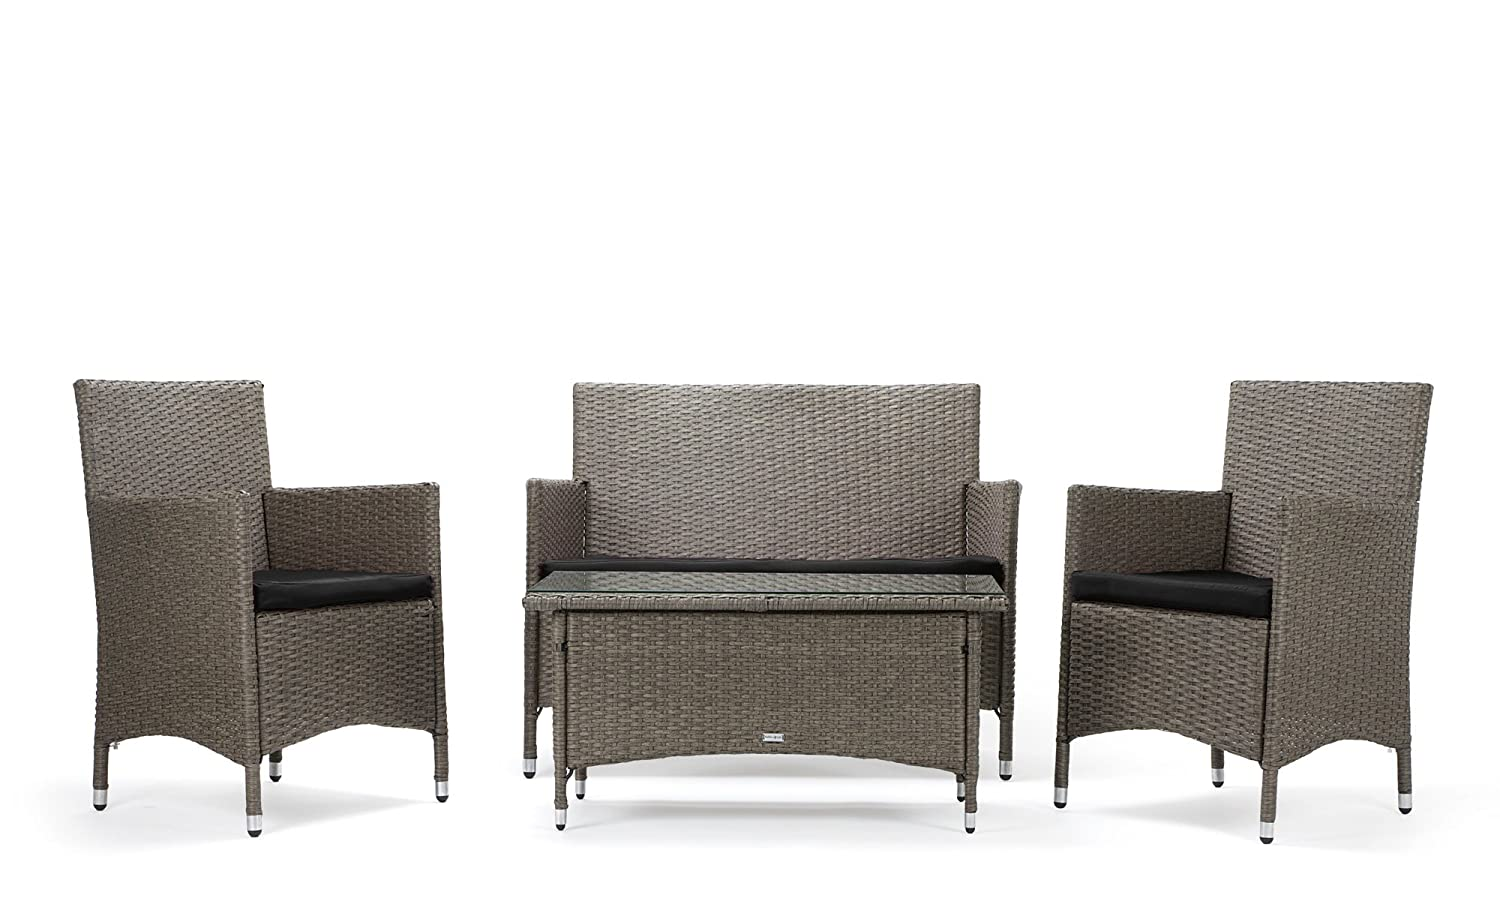 rattan4life sitzgruppe avignon 4 teilig deluxe polyrattan gartenm bel set sofa lounge. Black Bedroom Furniture Sets. Home Design Ideas